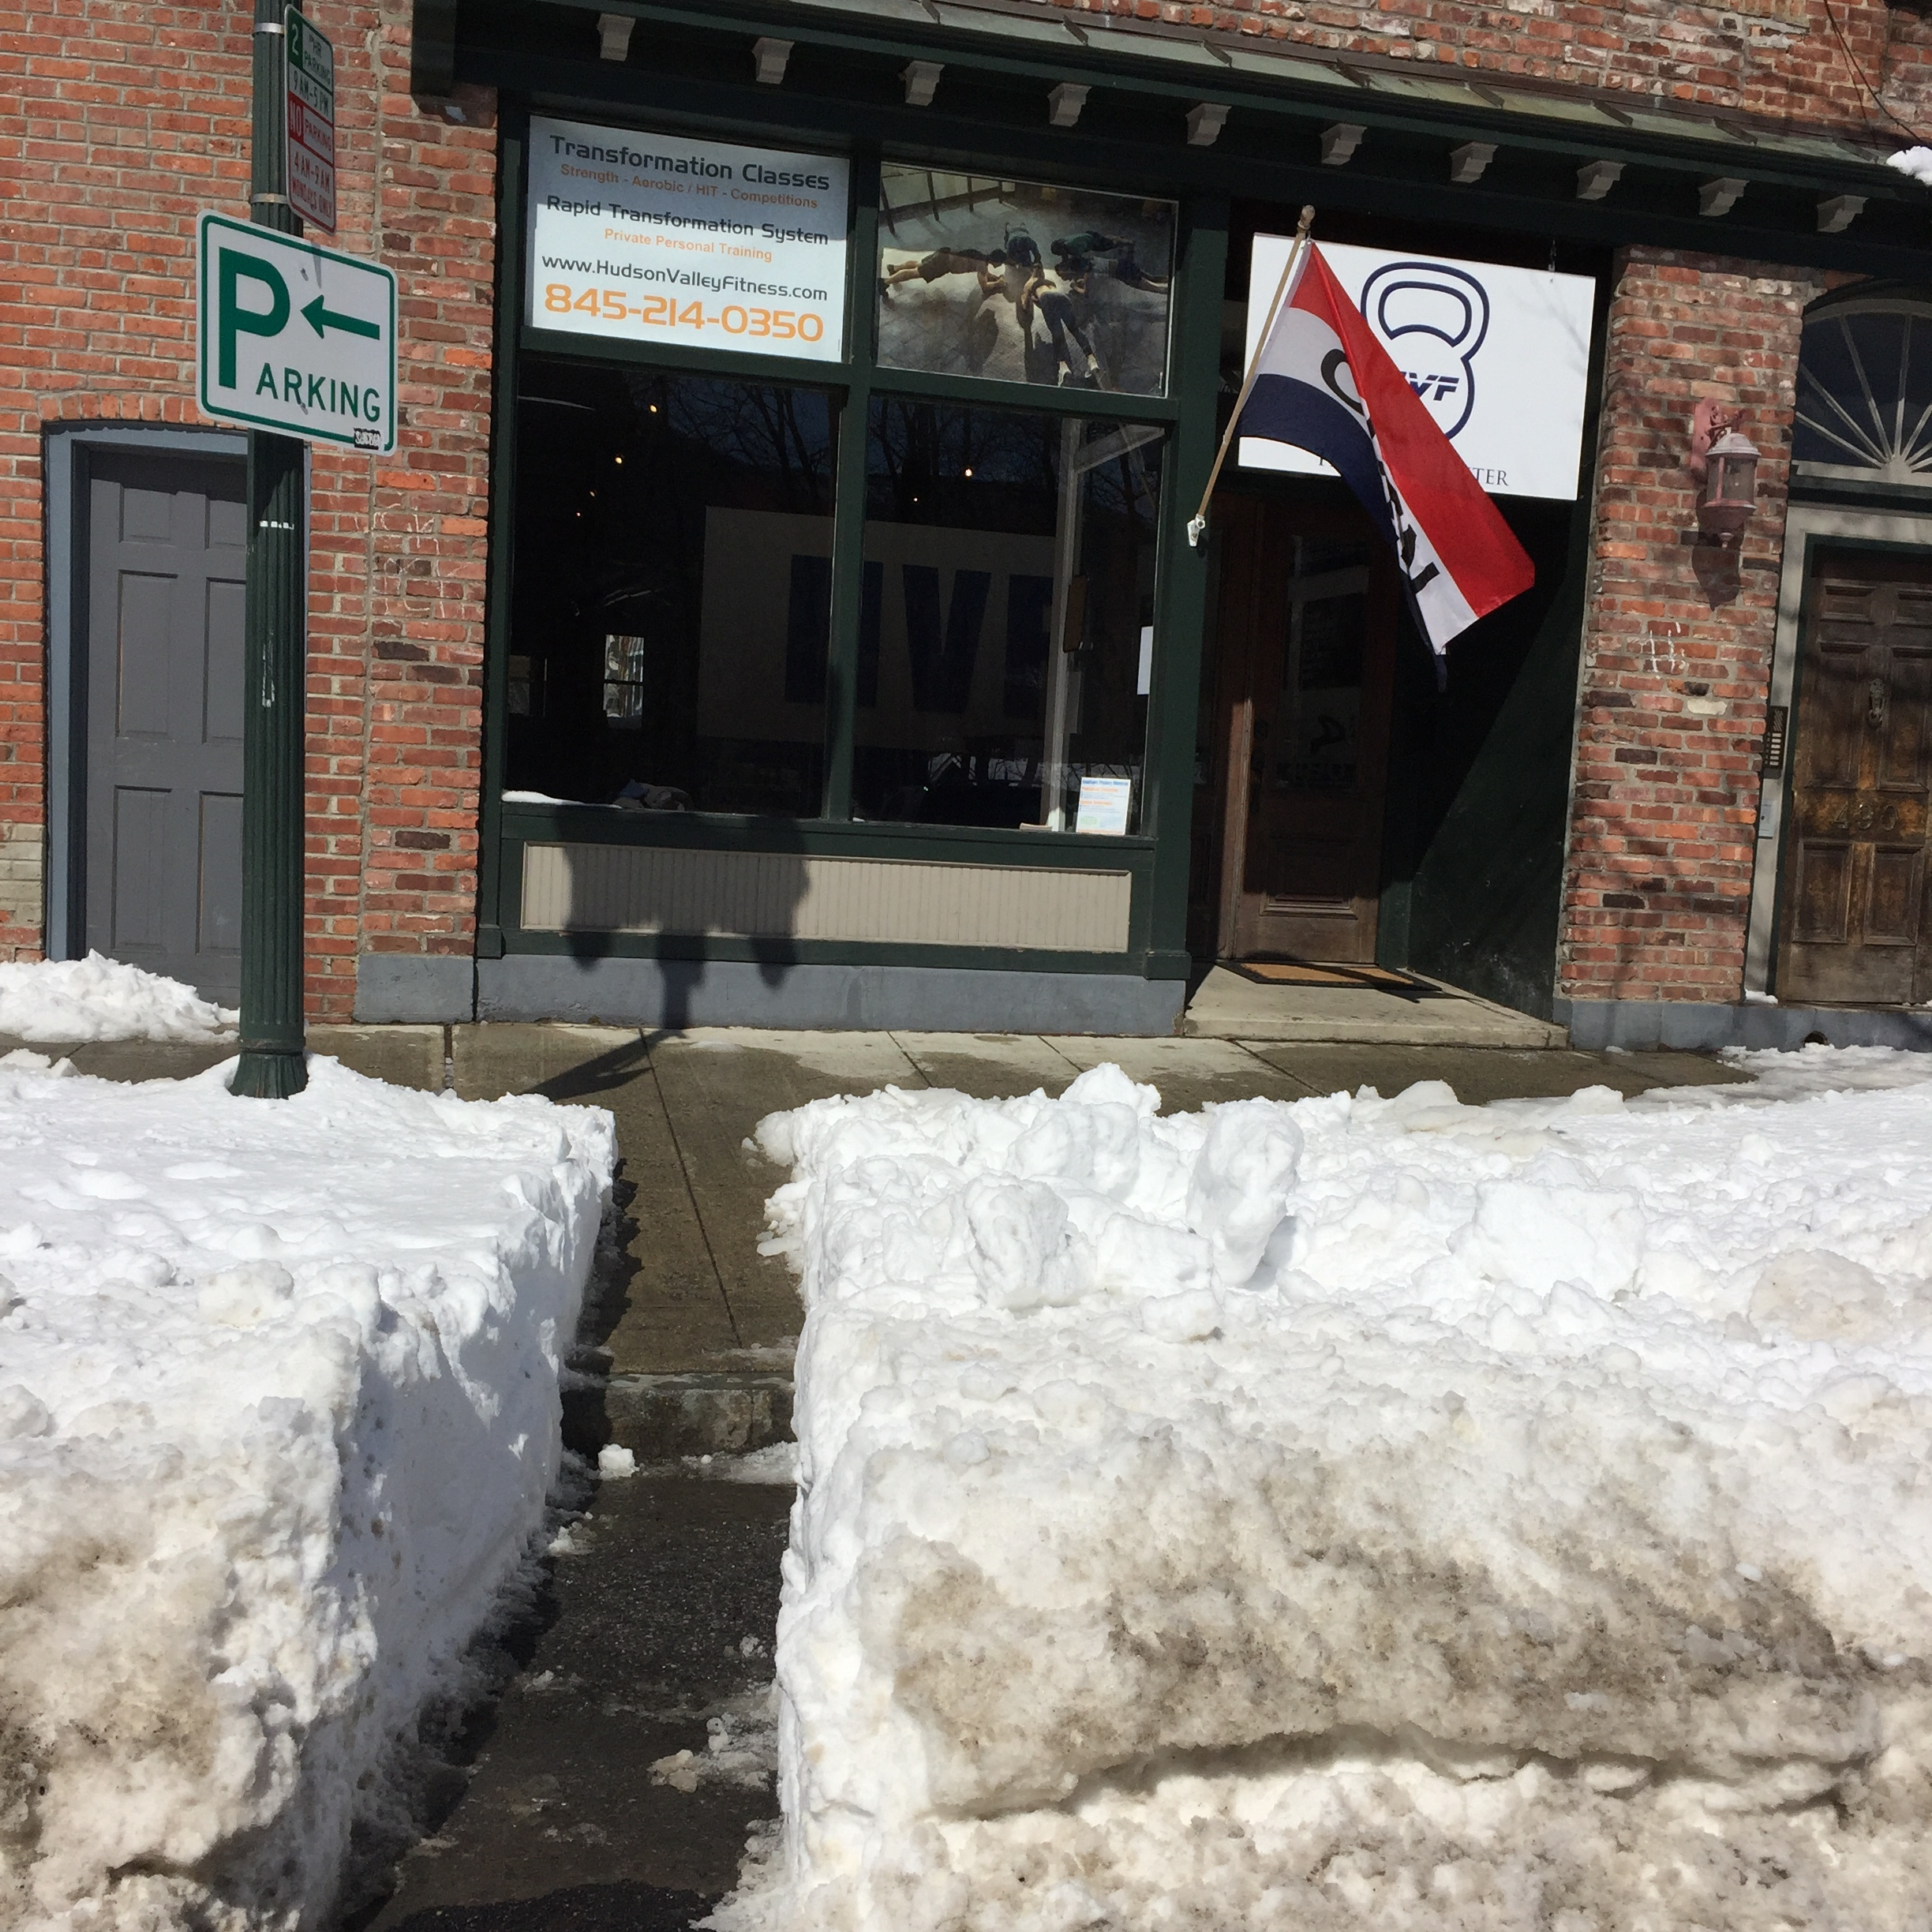 A pathway was cleared for gymgoers to Hudson Valley Fitness and other neighboring shops.